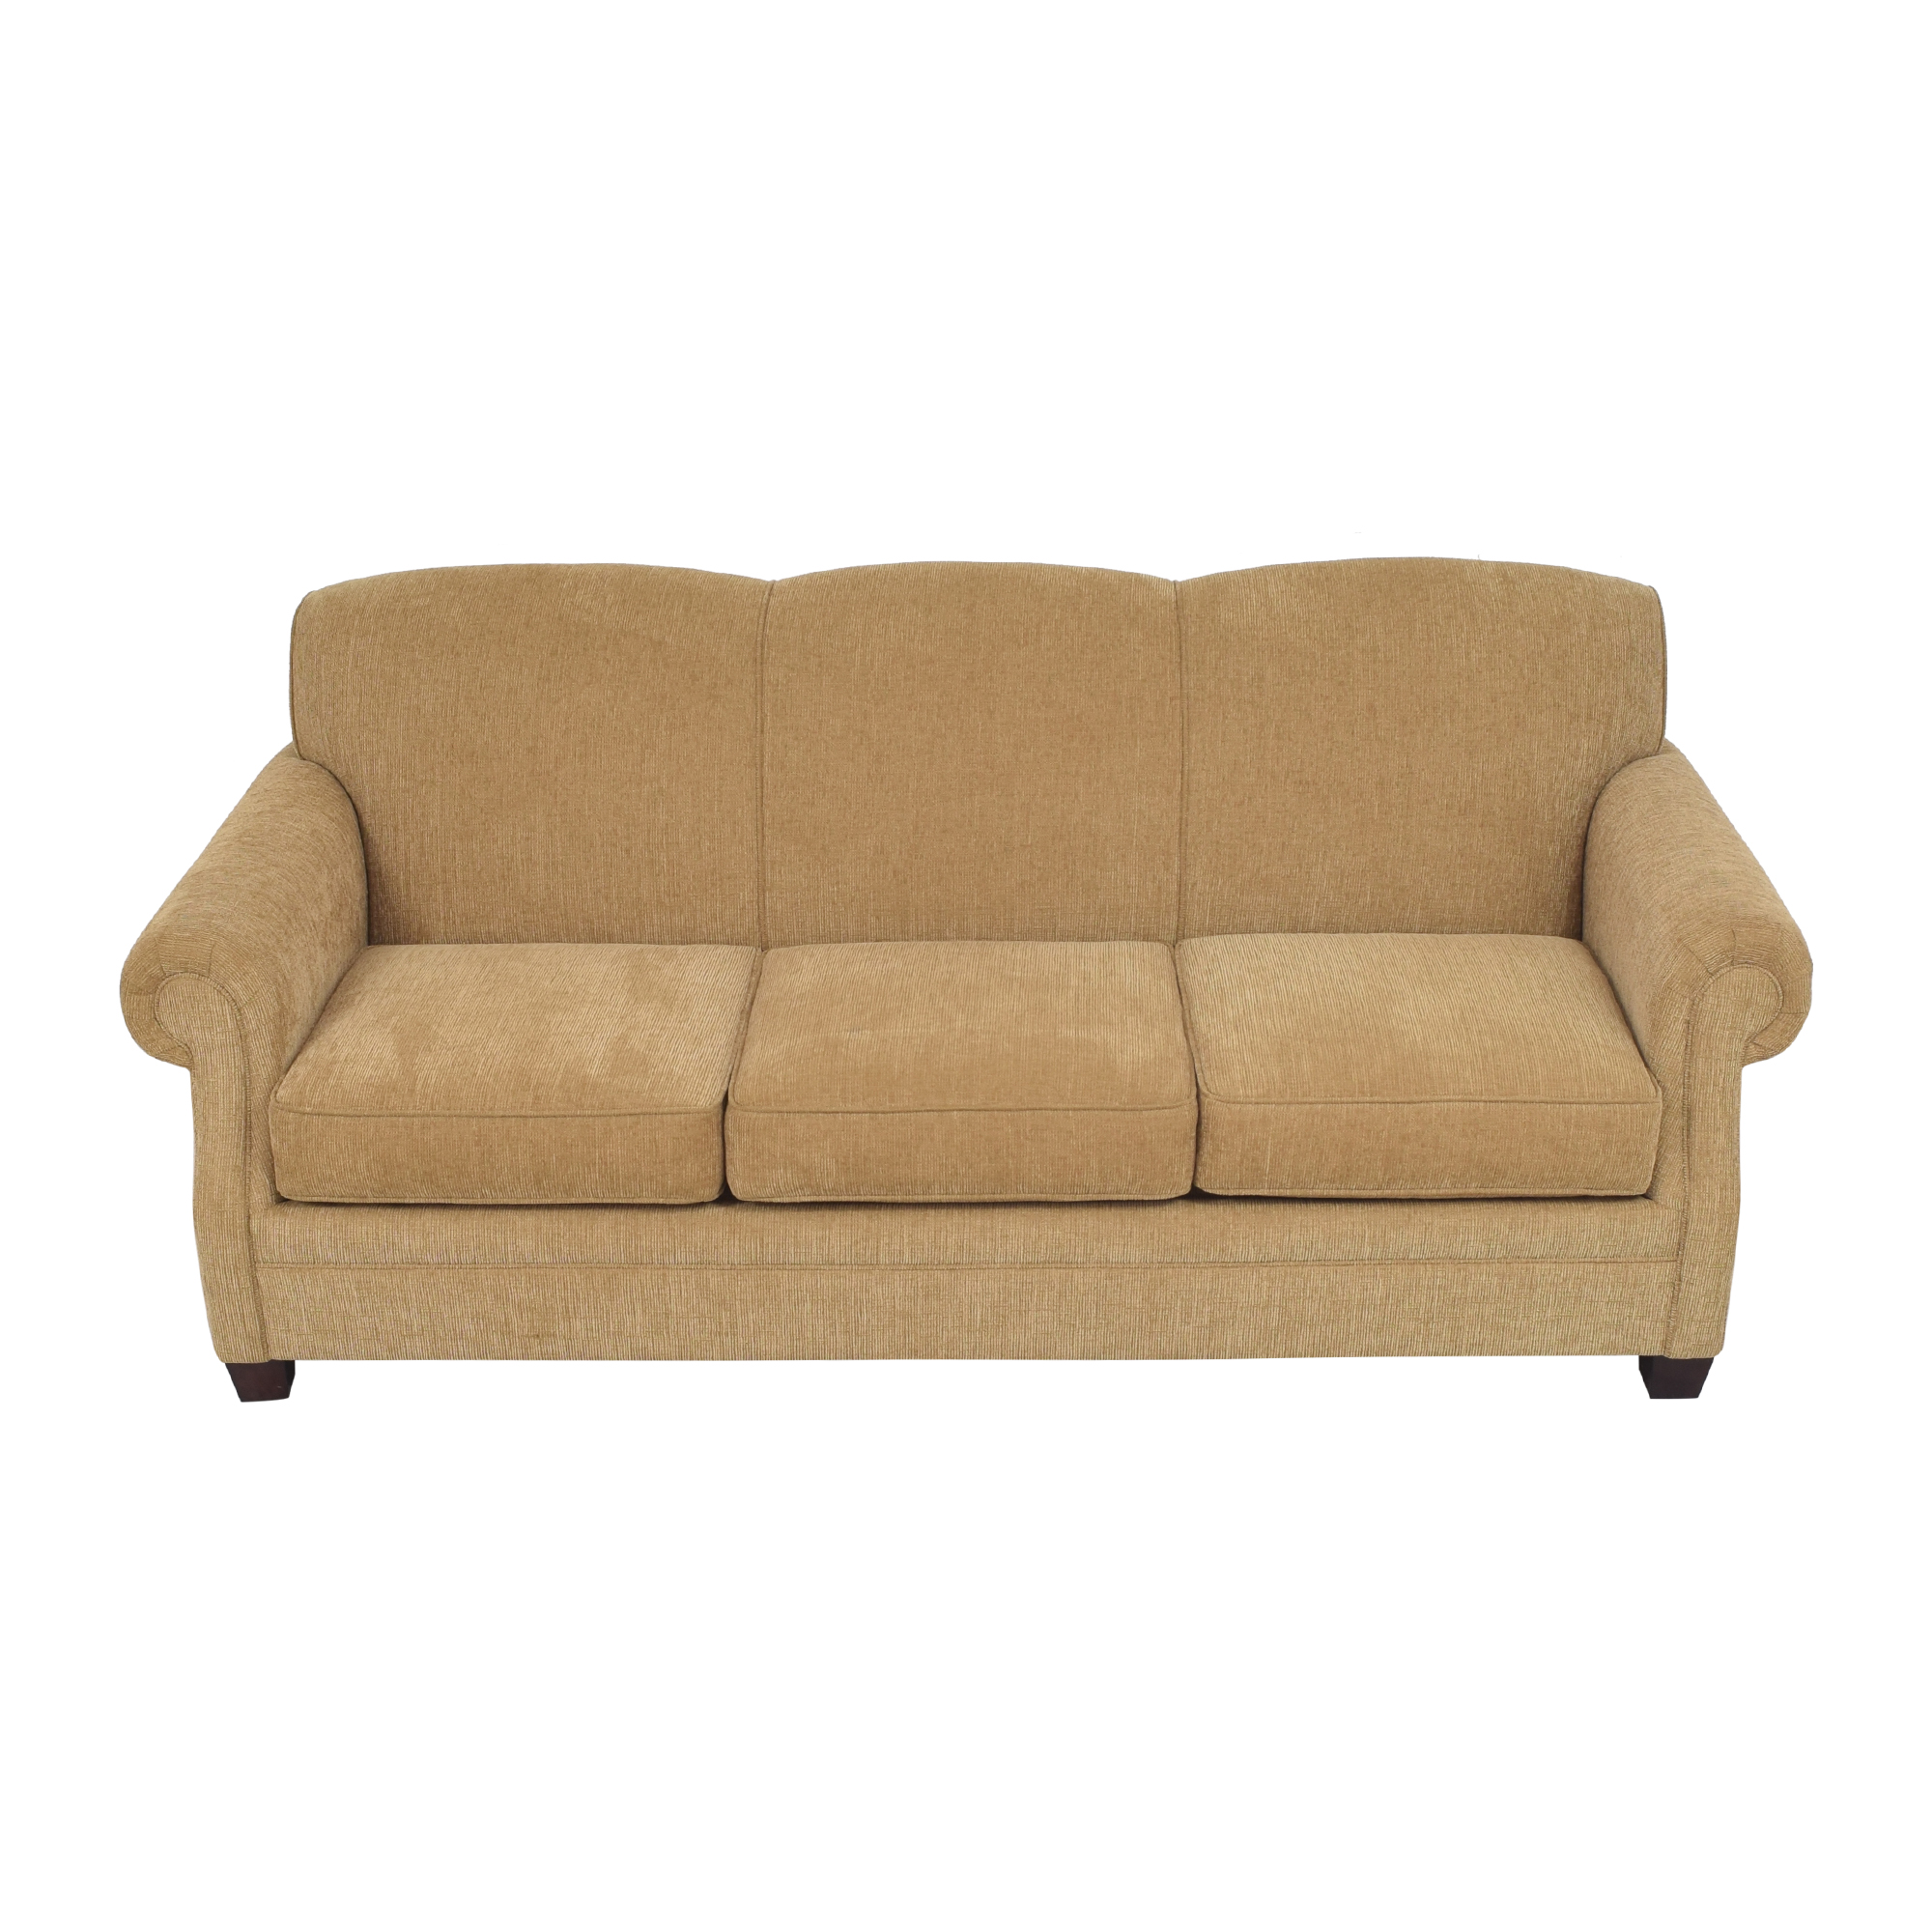 Bauhaus Furniture Bauhaus Furniture Wellington Roll Arm Sofa ma